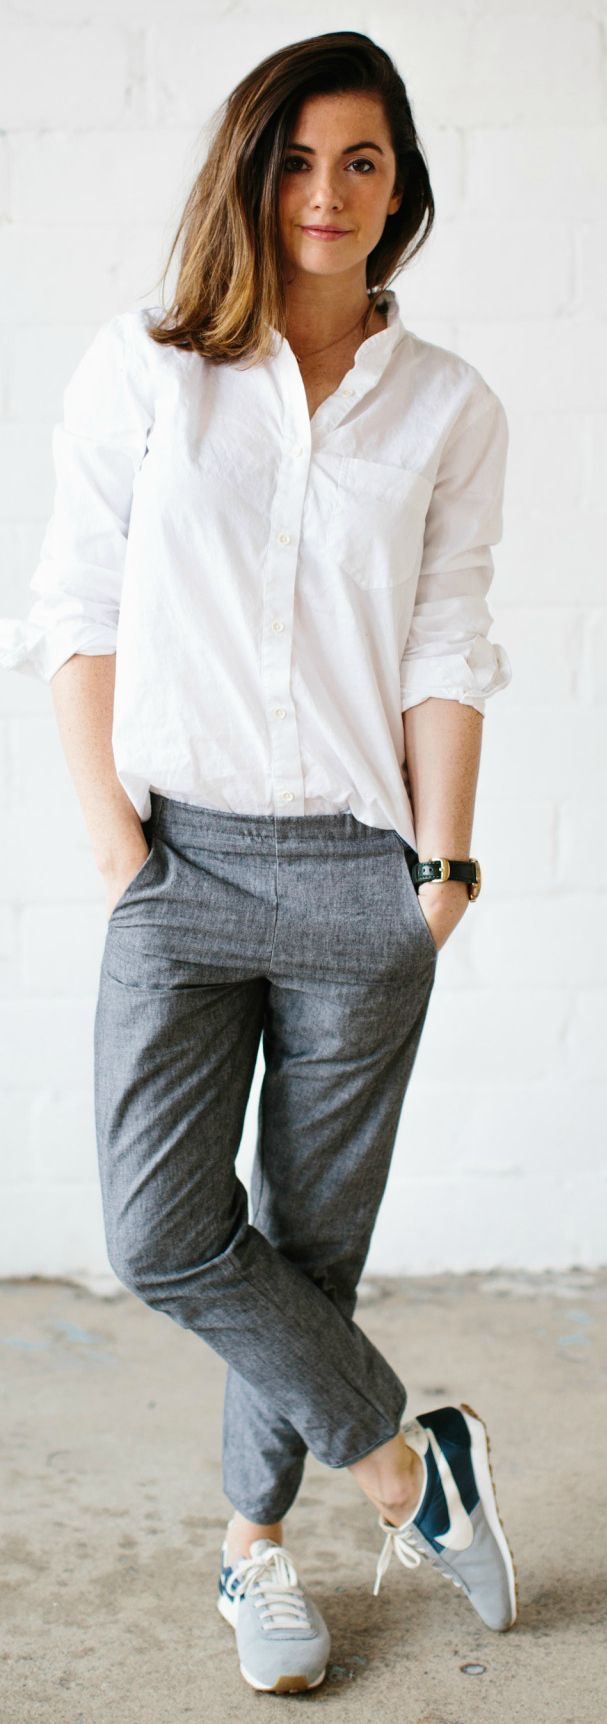 Best 25+ Plain white shirt ideas only on Pinterest | White tees ...